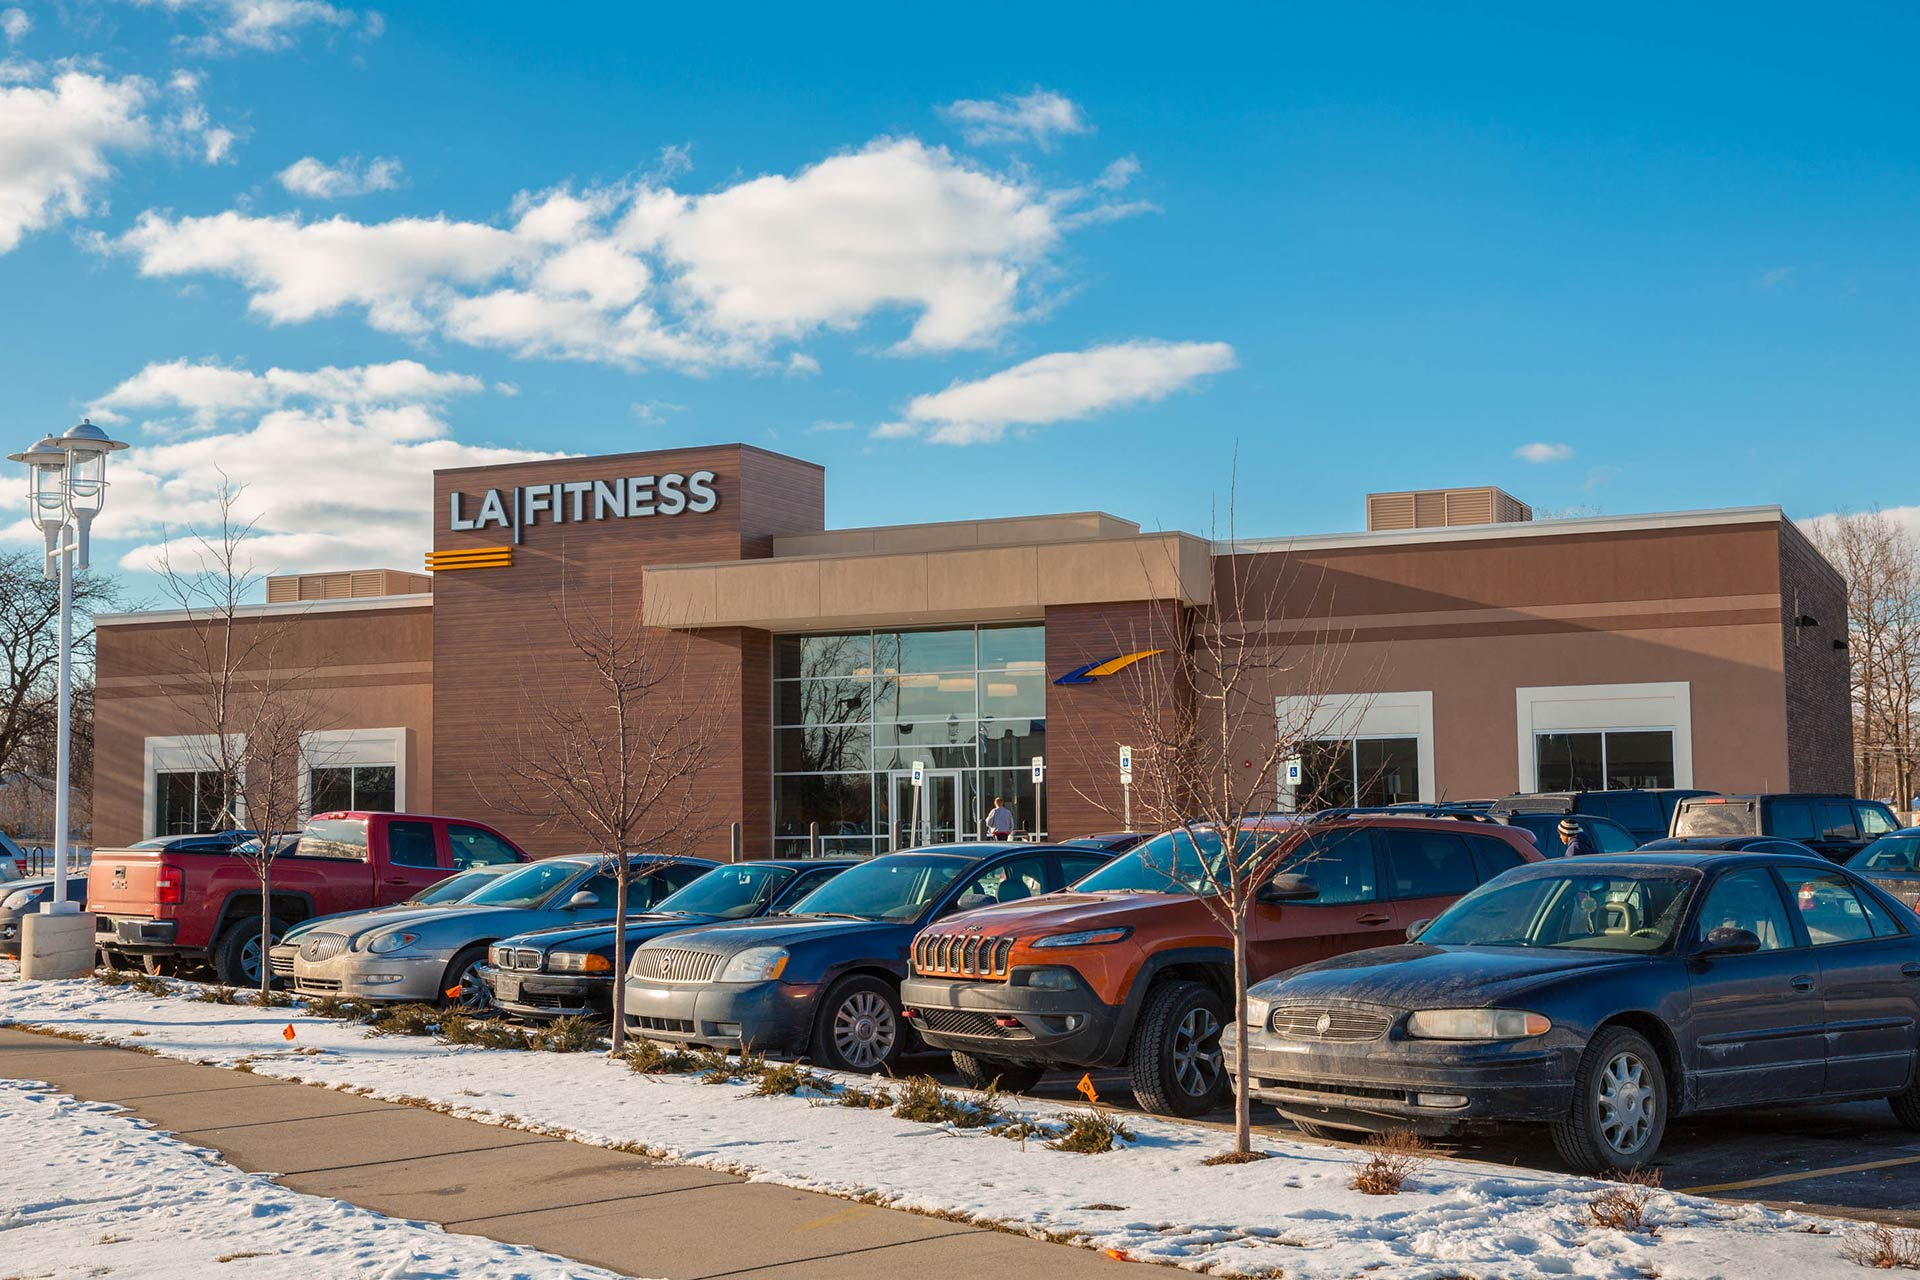 LA Fitness, St. Clair Shores, MI